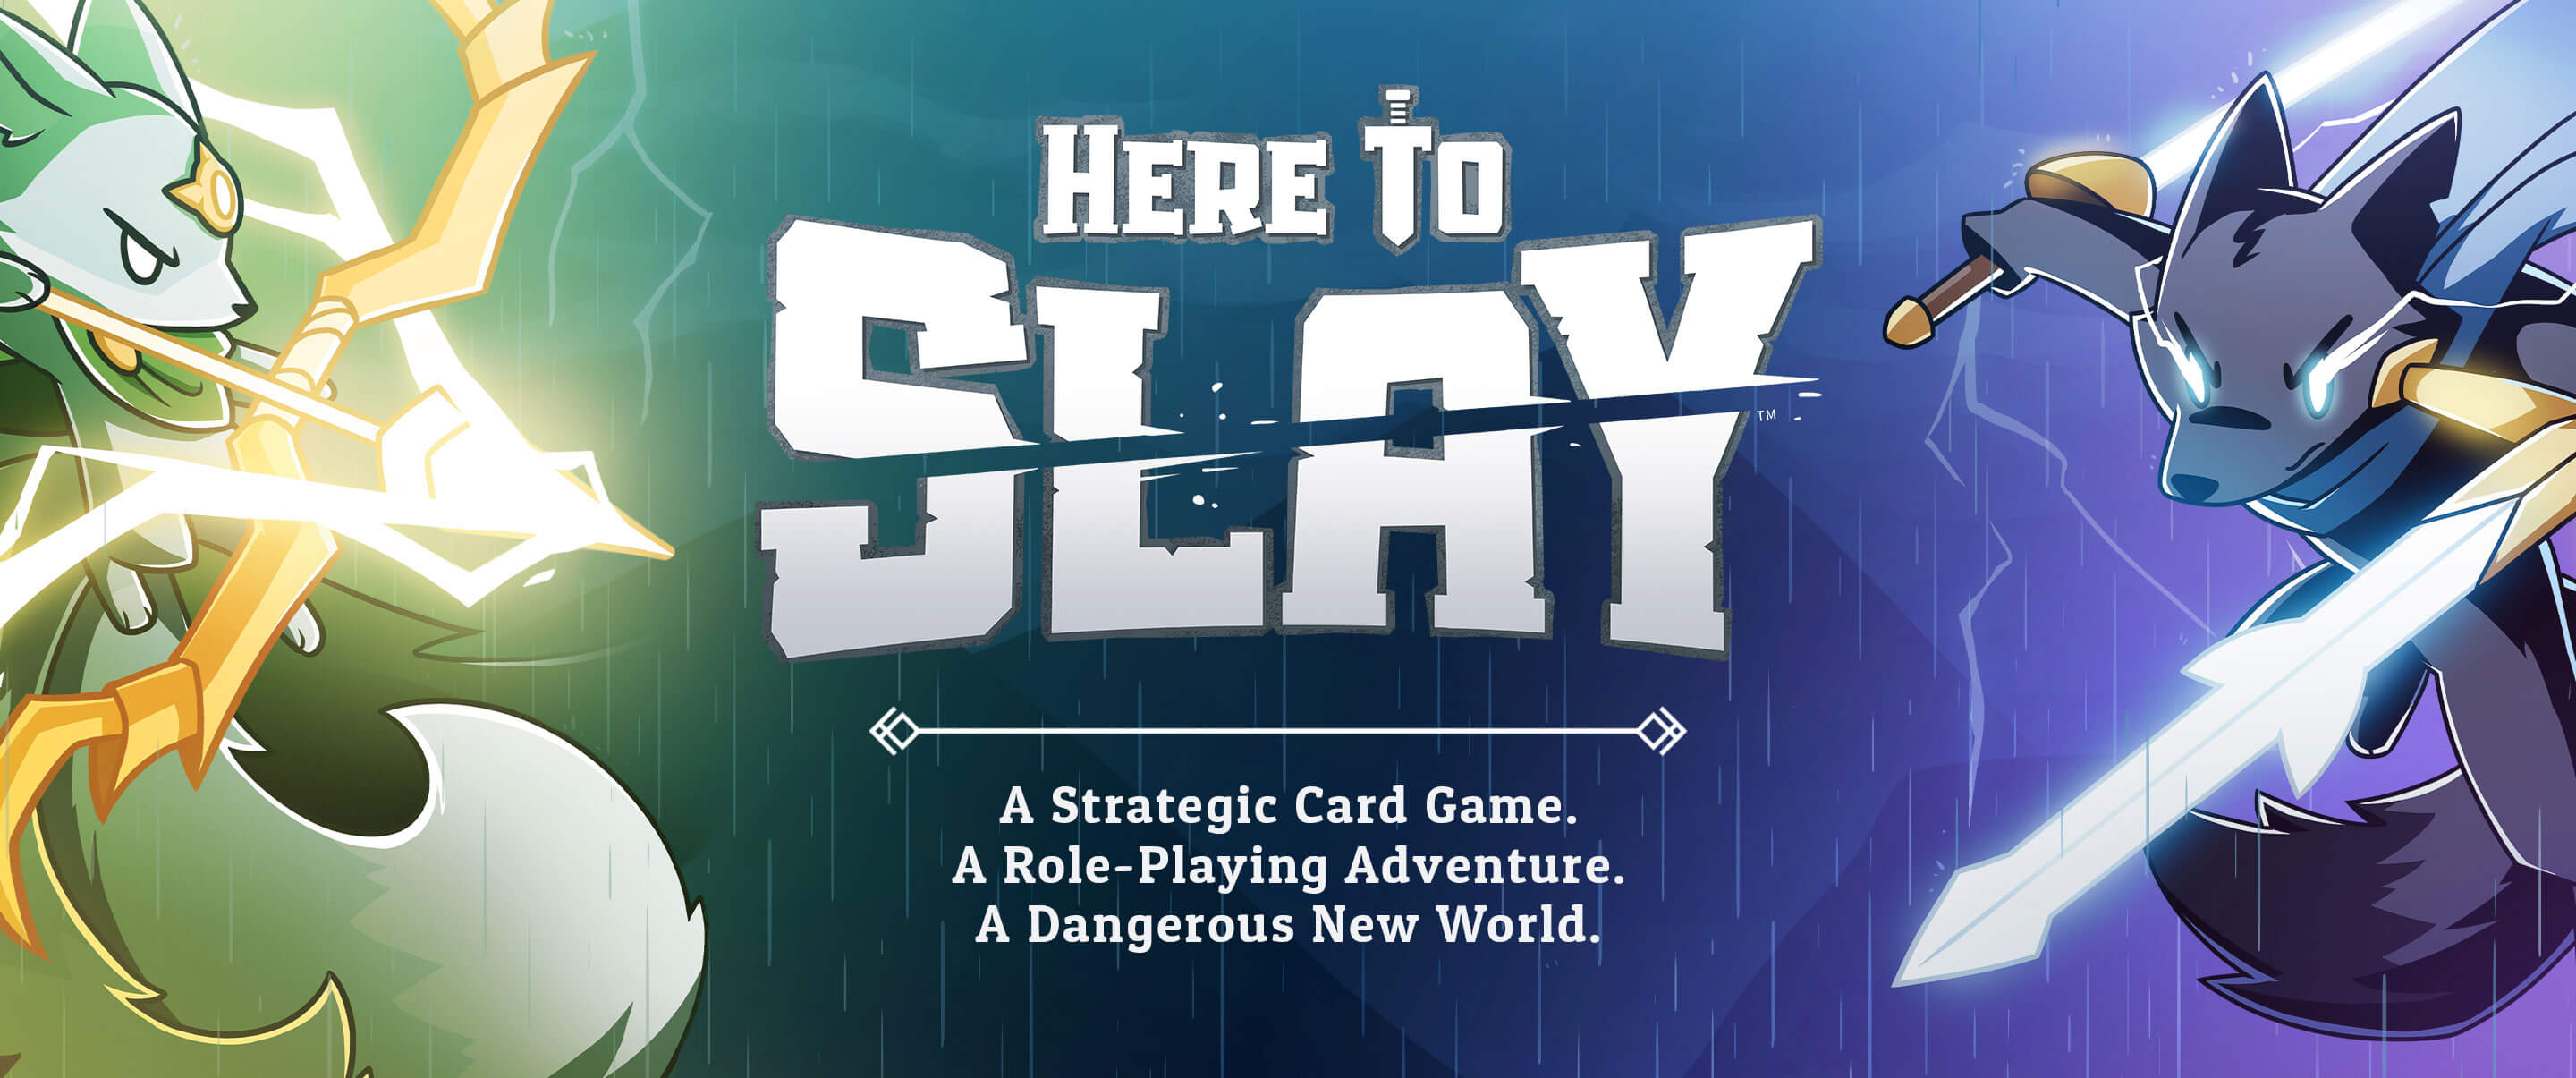 Here to Slay. A Strategic Card Game. A Role-Playing Adventure. A Dangerous New World.